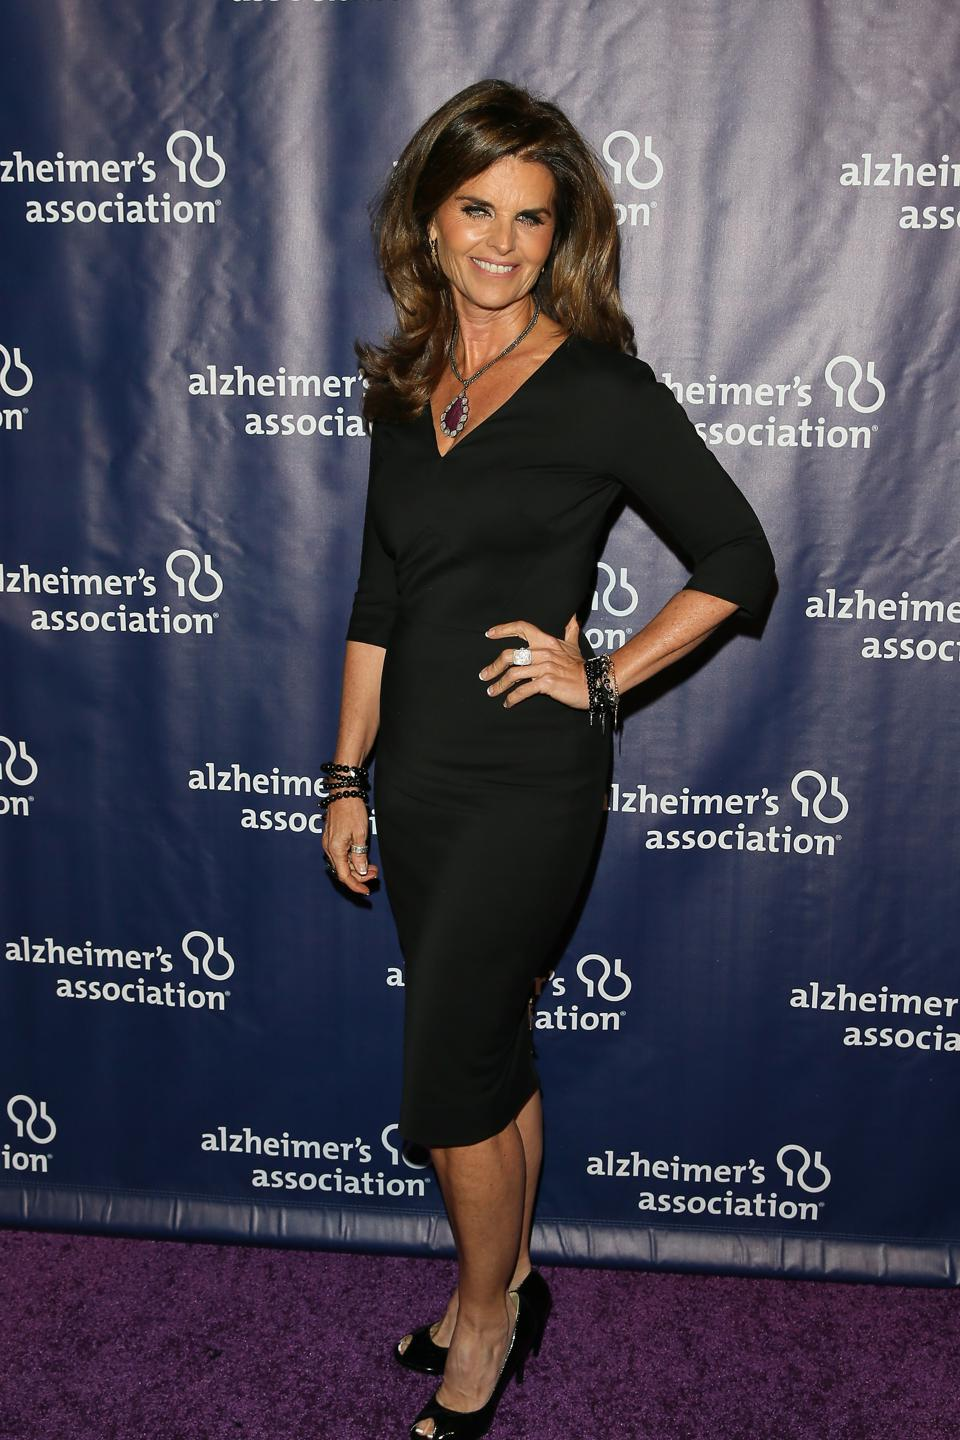 23rd Annual ″A Night At Sardi's″ To Benefit The Alzheimer's Association - Arrivals